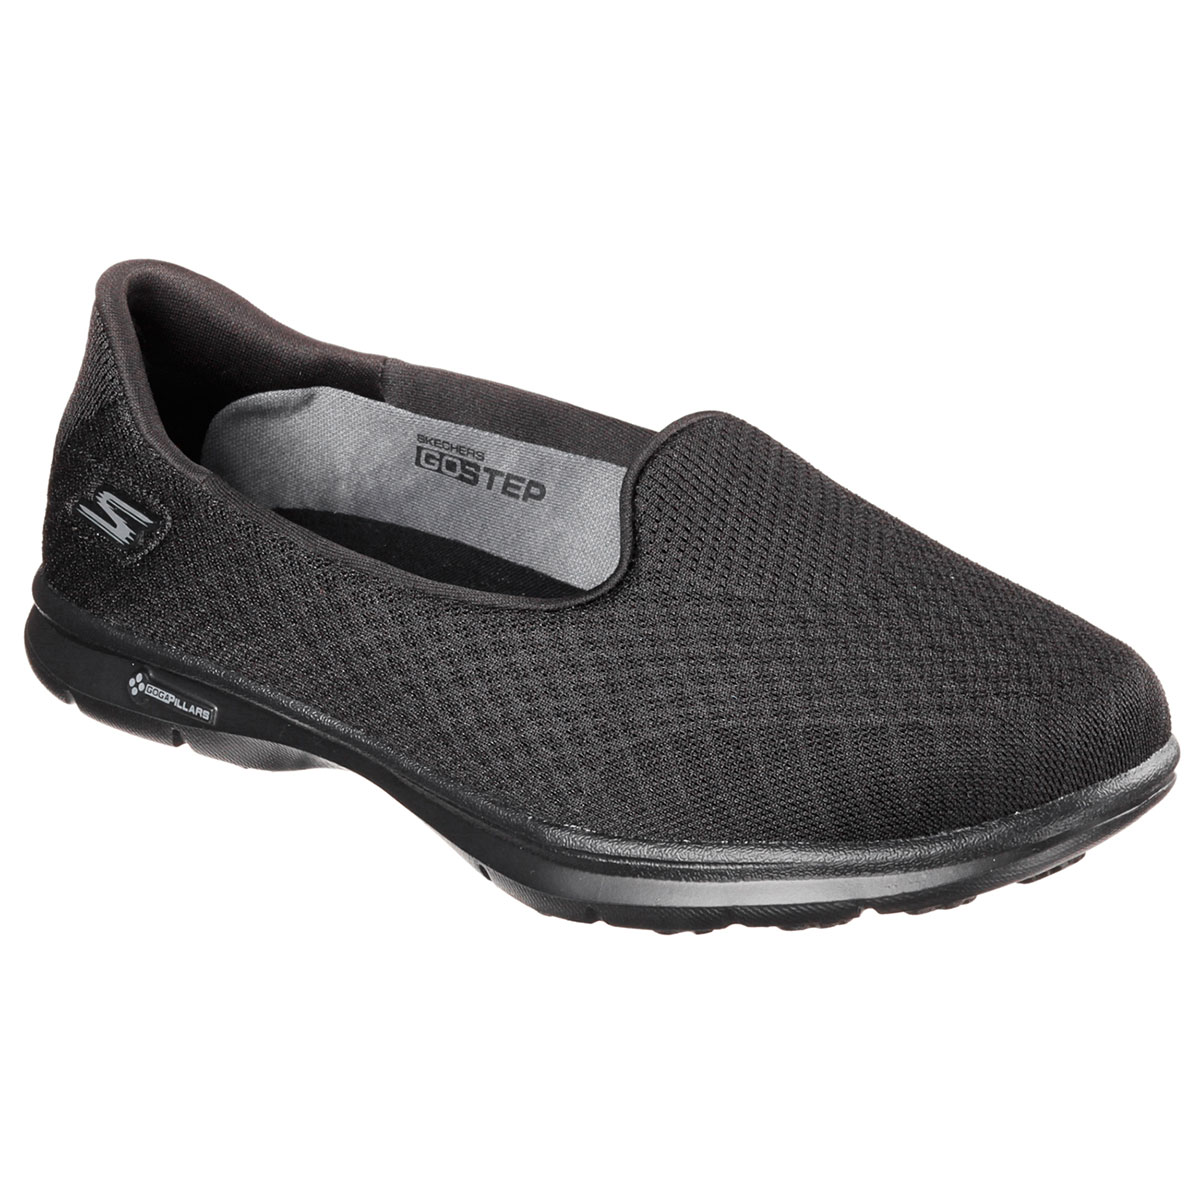 a889e1aa1438 Details about Skechers Womens Go Step - Elated Slip On Walking Training Shoes  Trainers